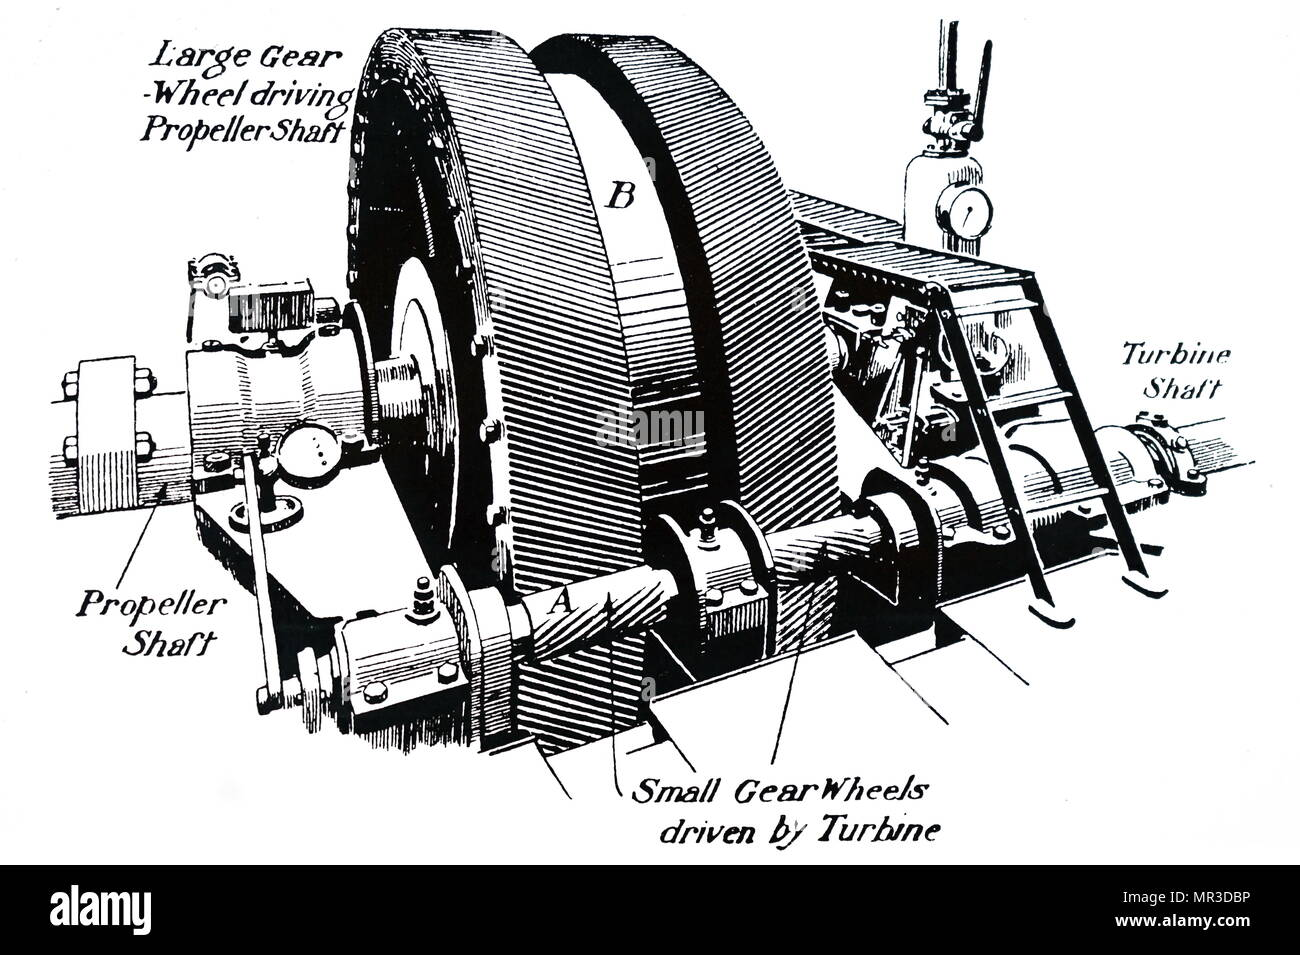 hight resolution of diagram depicting parsons gearing down machinery for steam turbines which allowed the turbine to be run much faster that the propeller